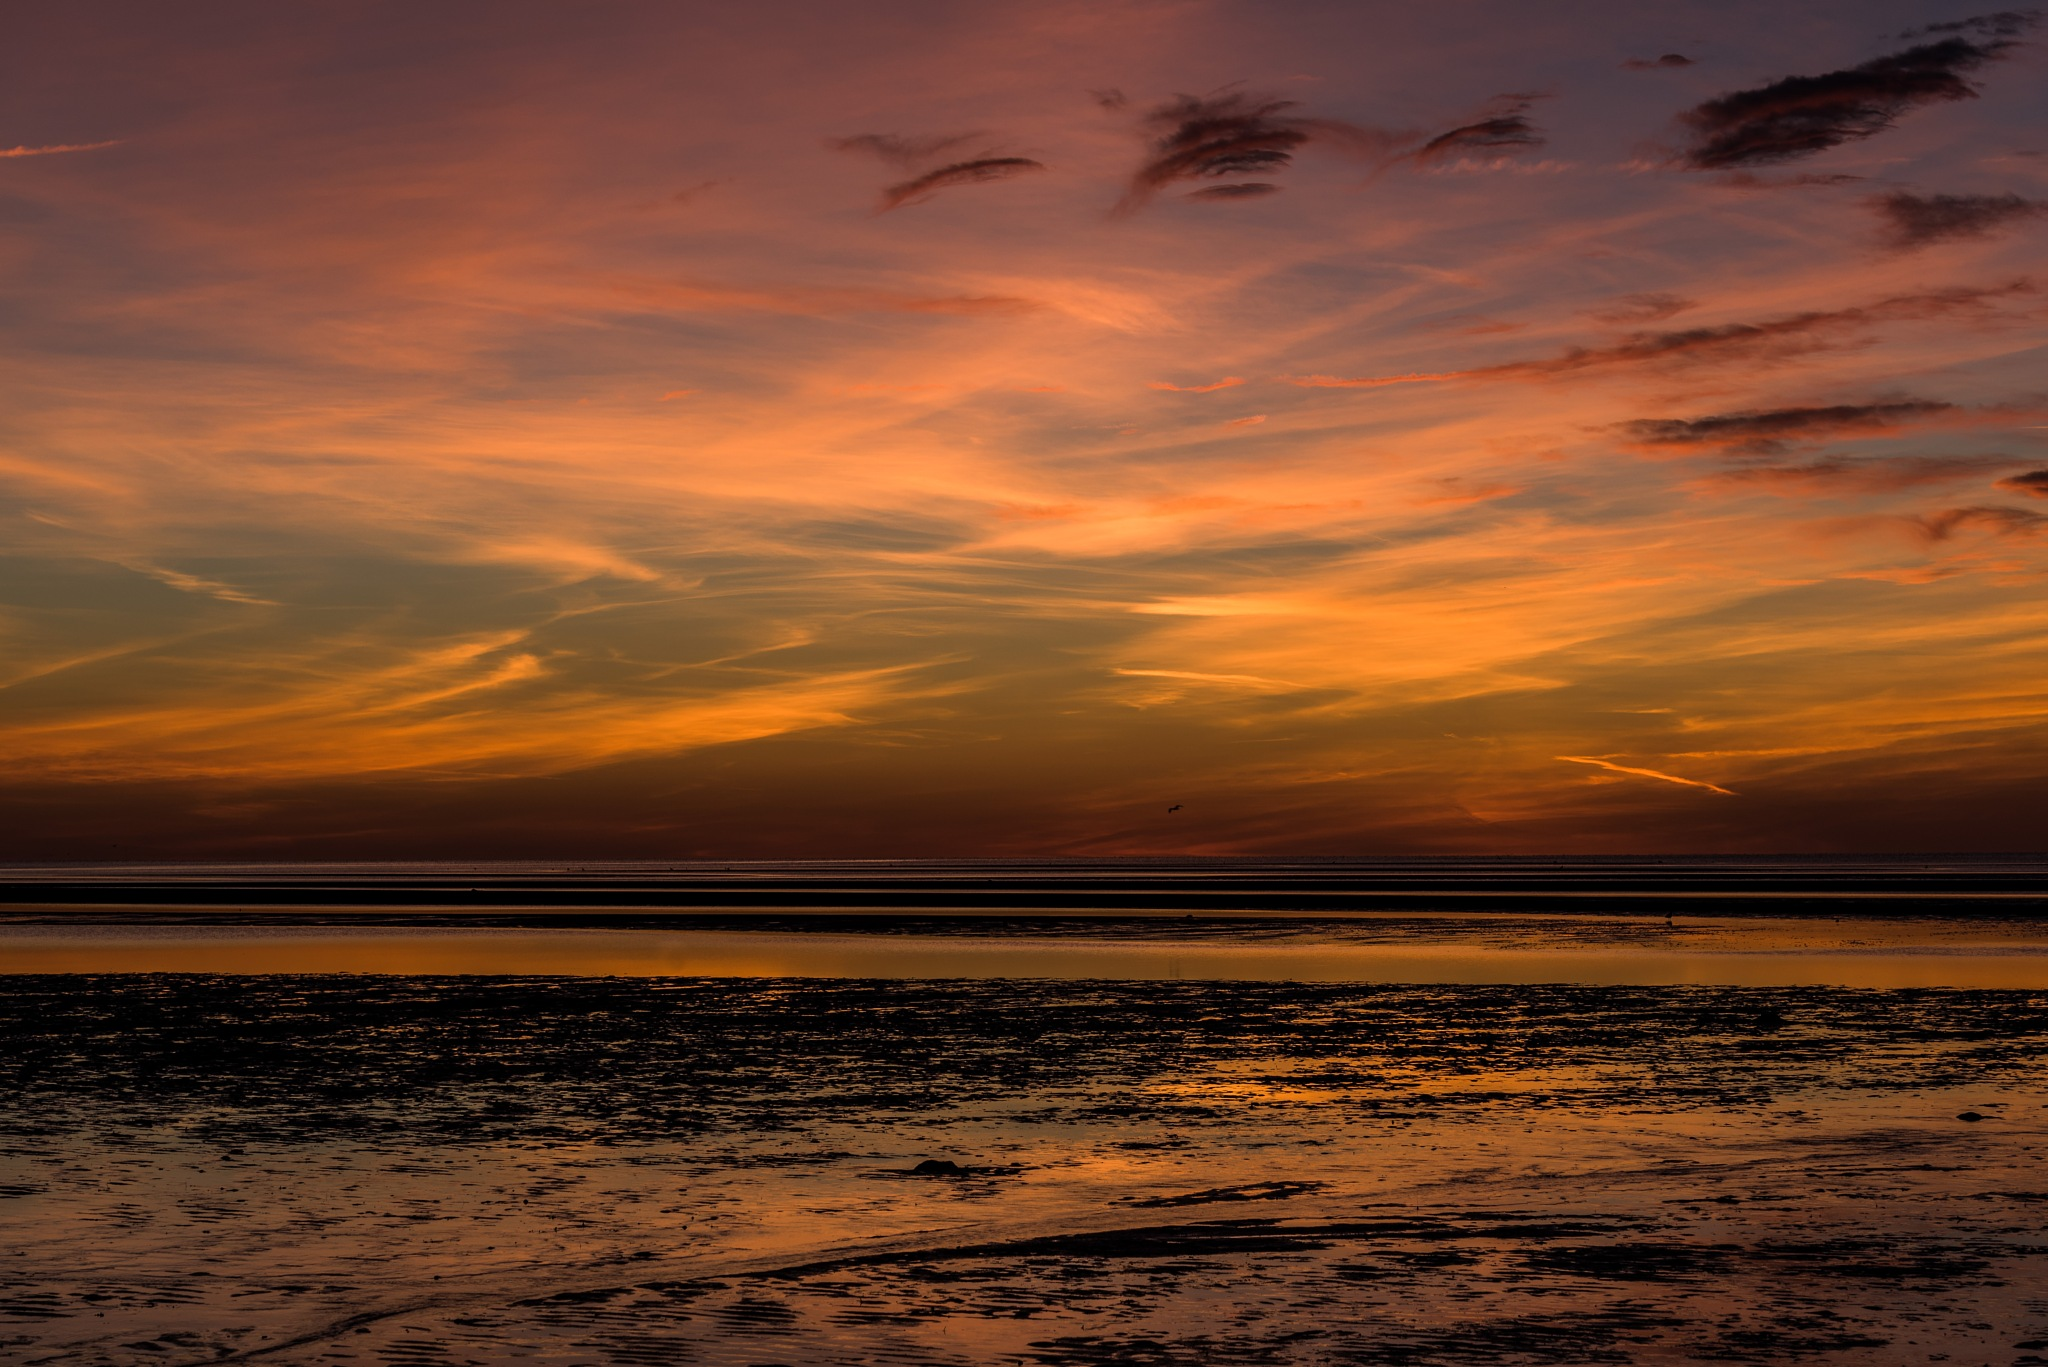 sunset artistry at lowtide by Todd Hyde